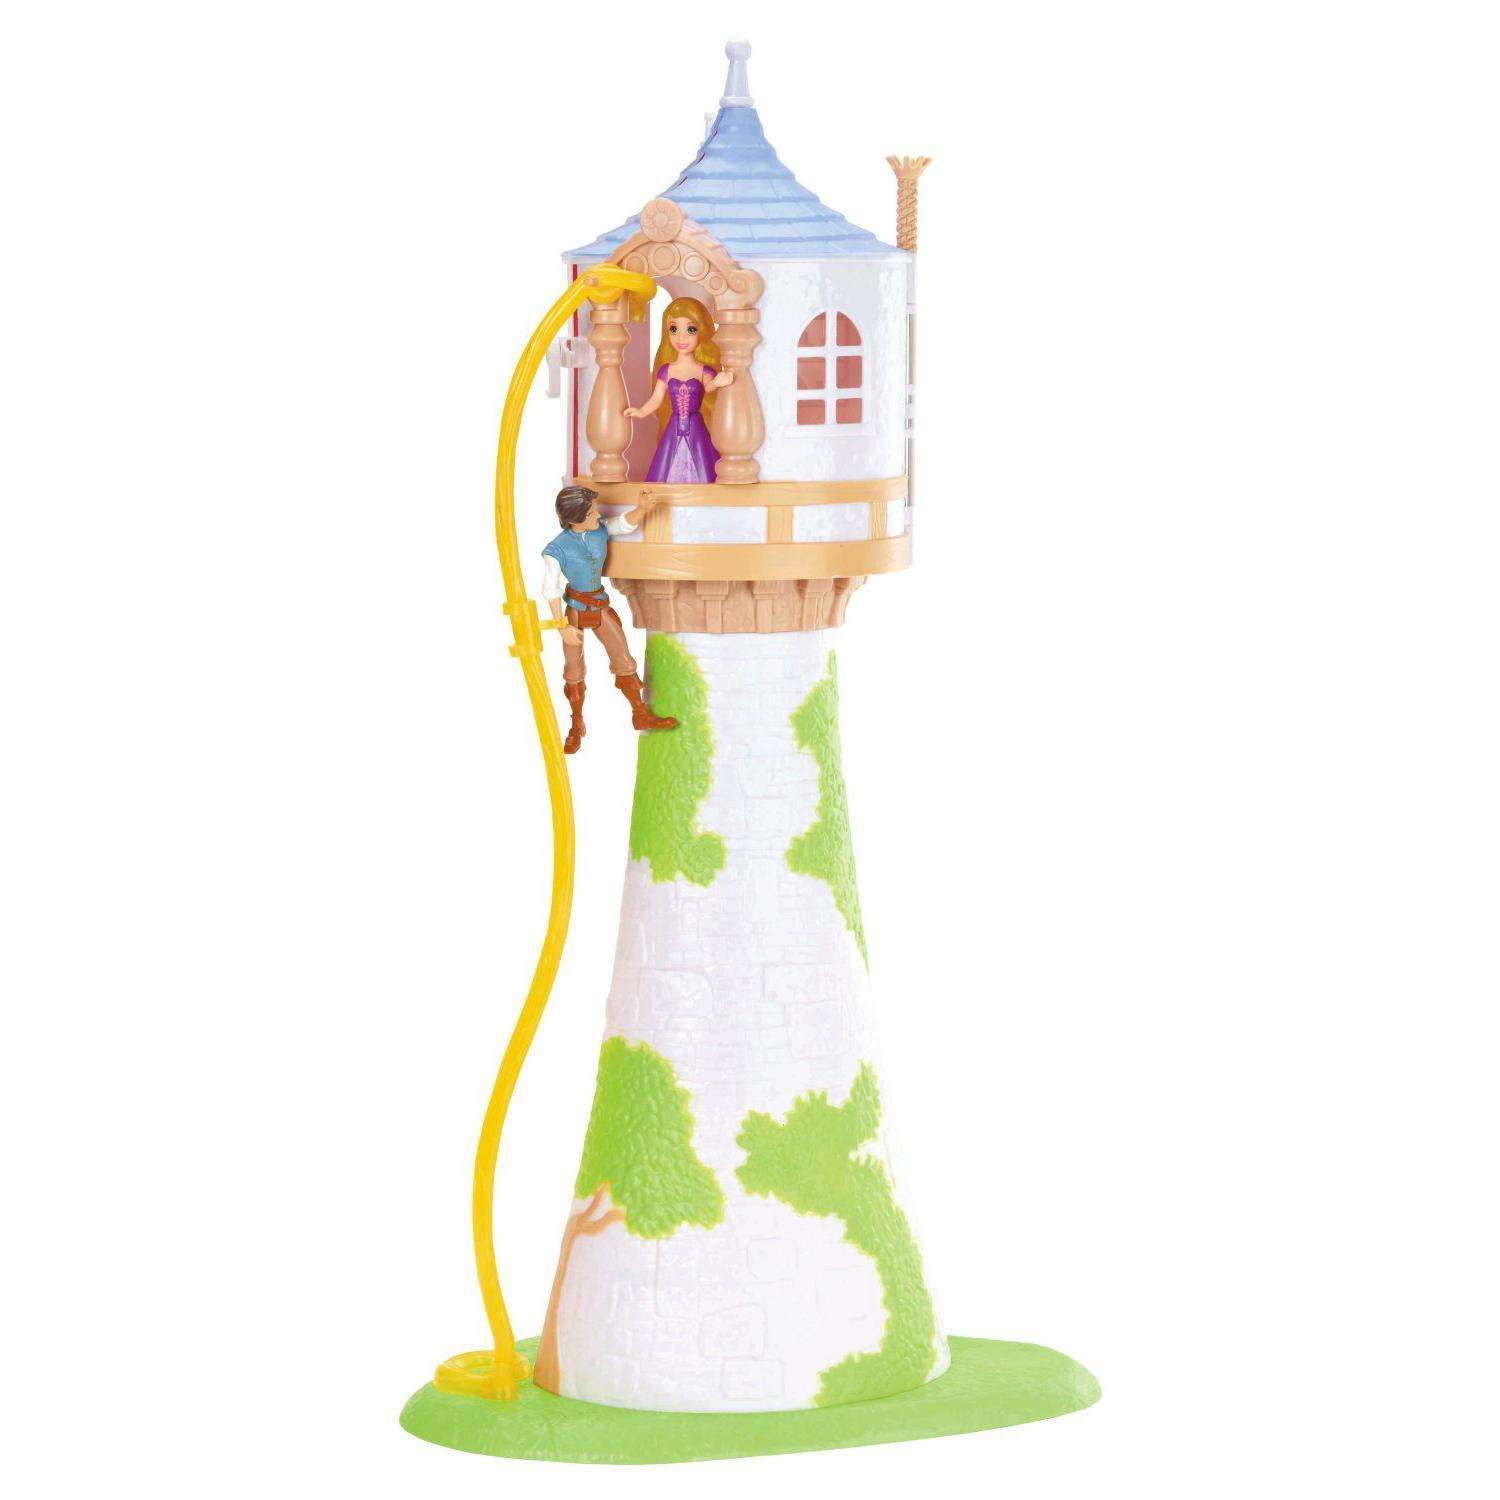 Rapunzel tower clipart jpg black and white library Rapunzel tower clipart 3 » Clipart Portal jpg black and white library